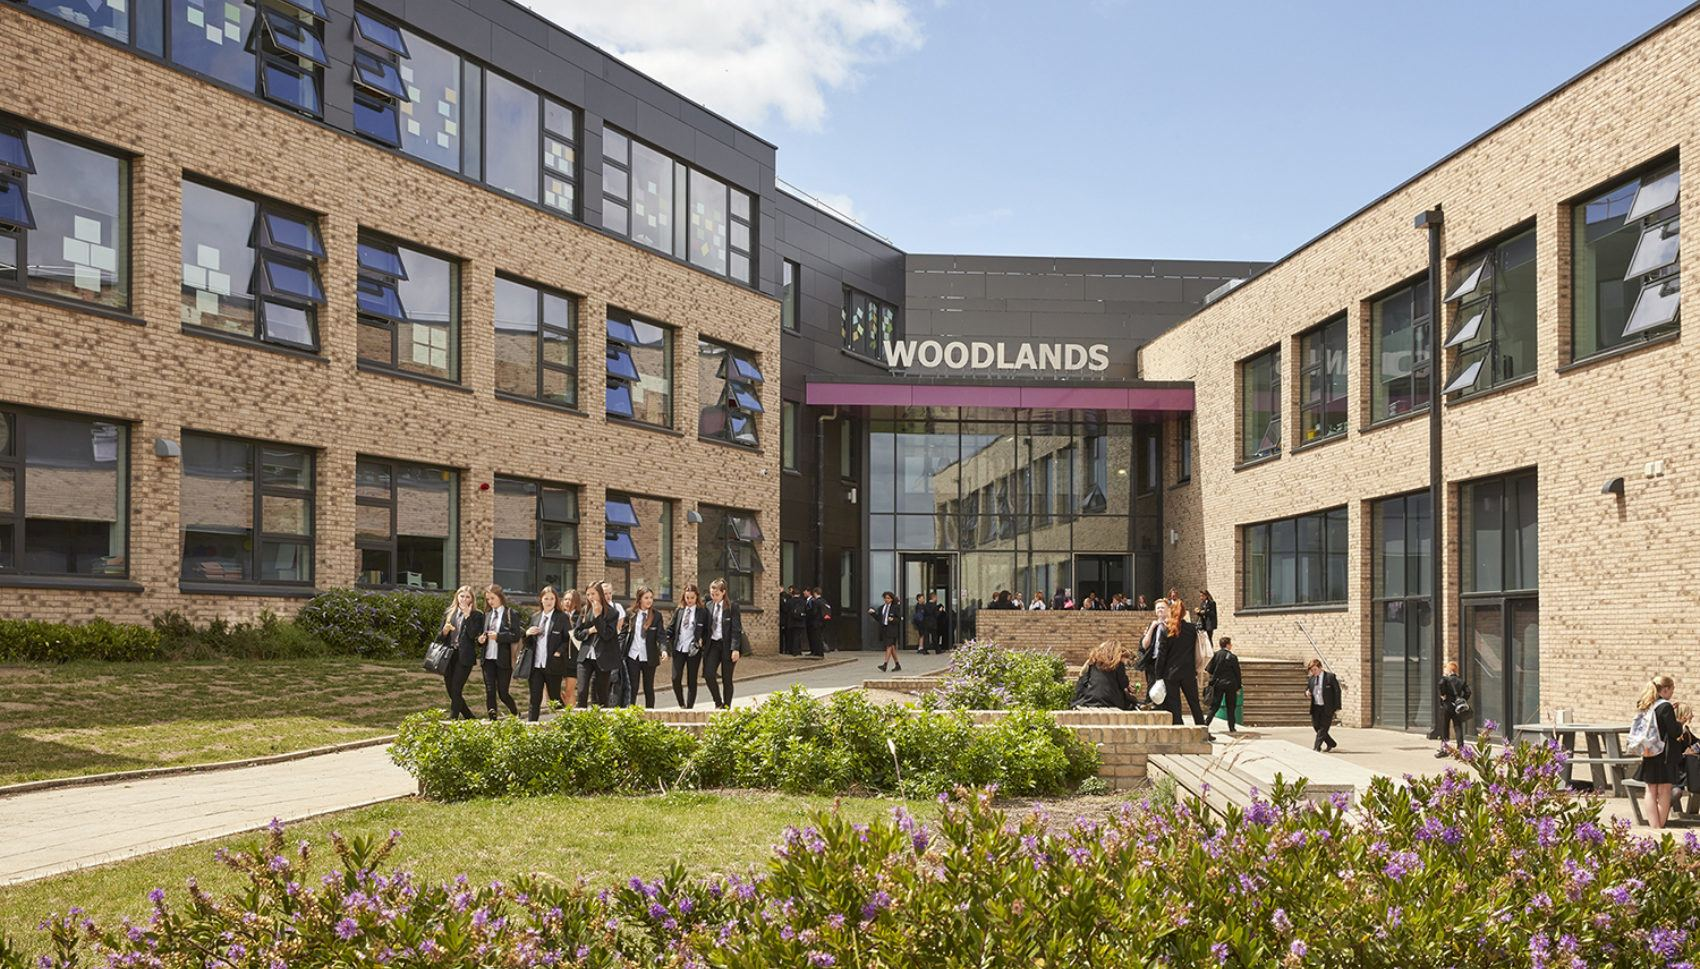 0634_Woodlands_School_N20.jpg